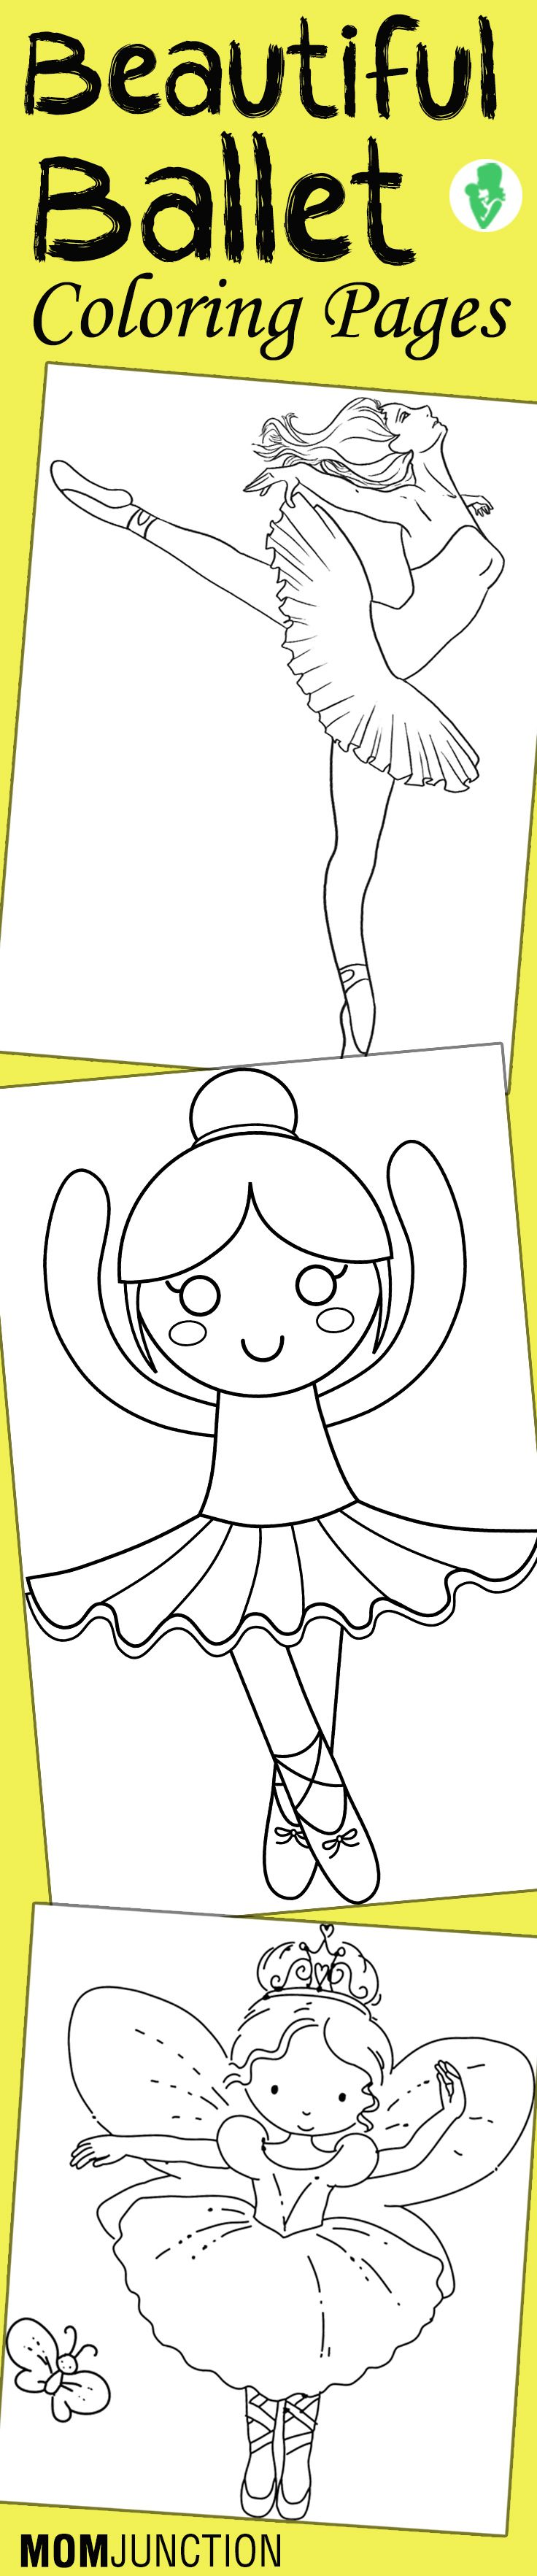 top 10 free printable beautiful ballet coloring pages online